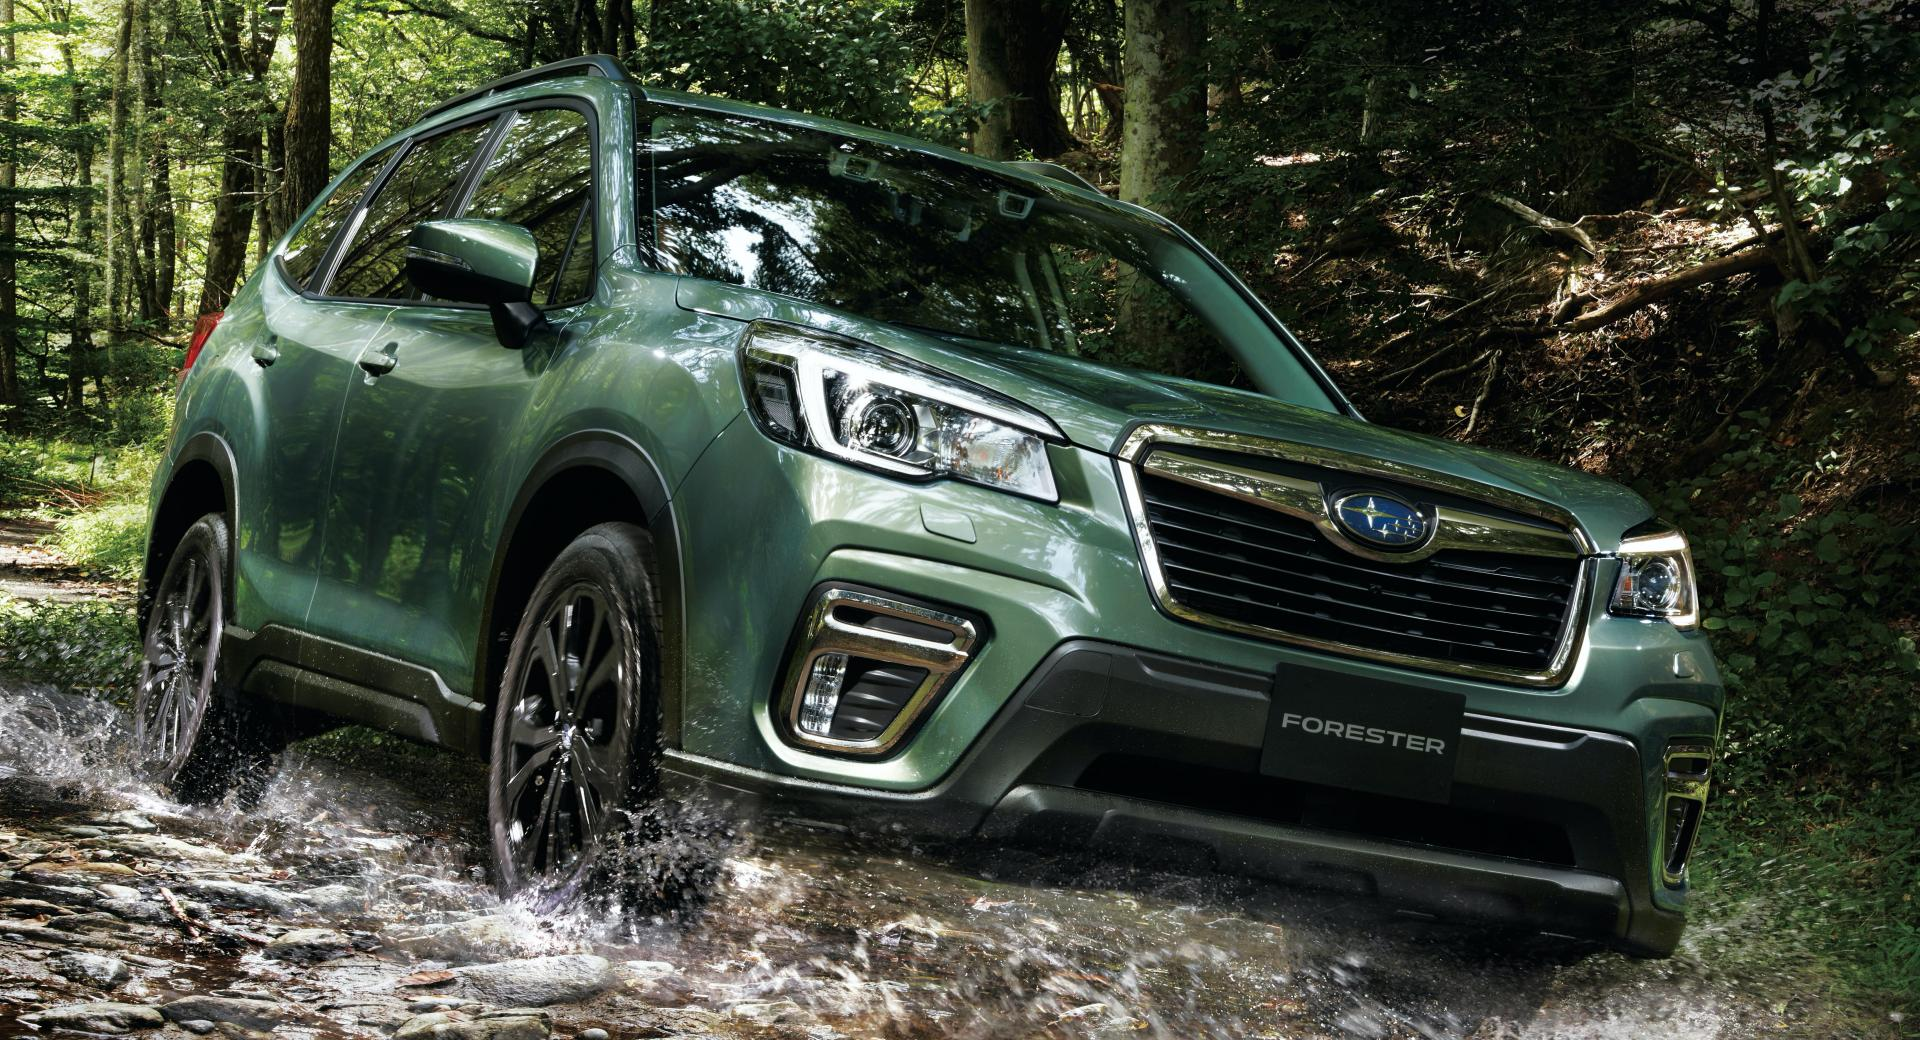 2020-Subaru-Forester-X-Edition-JDM-spec-0